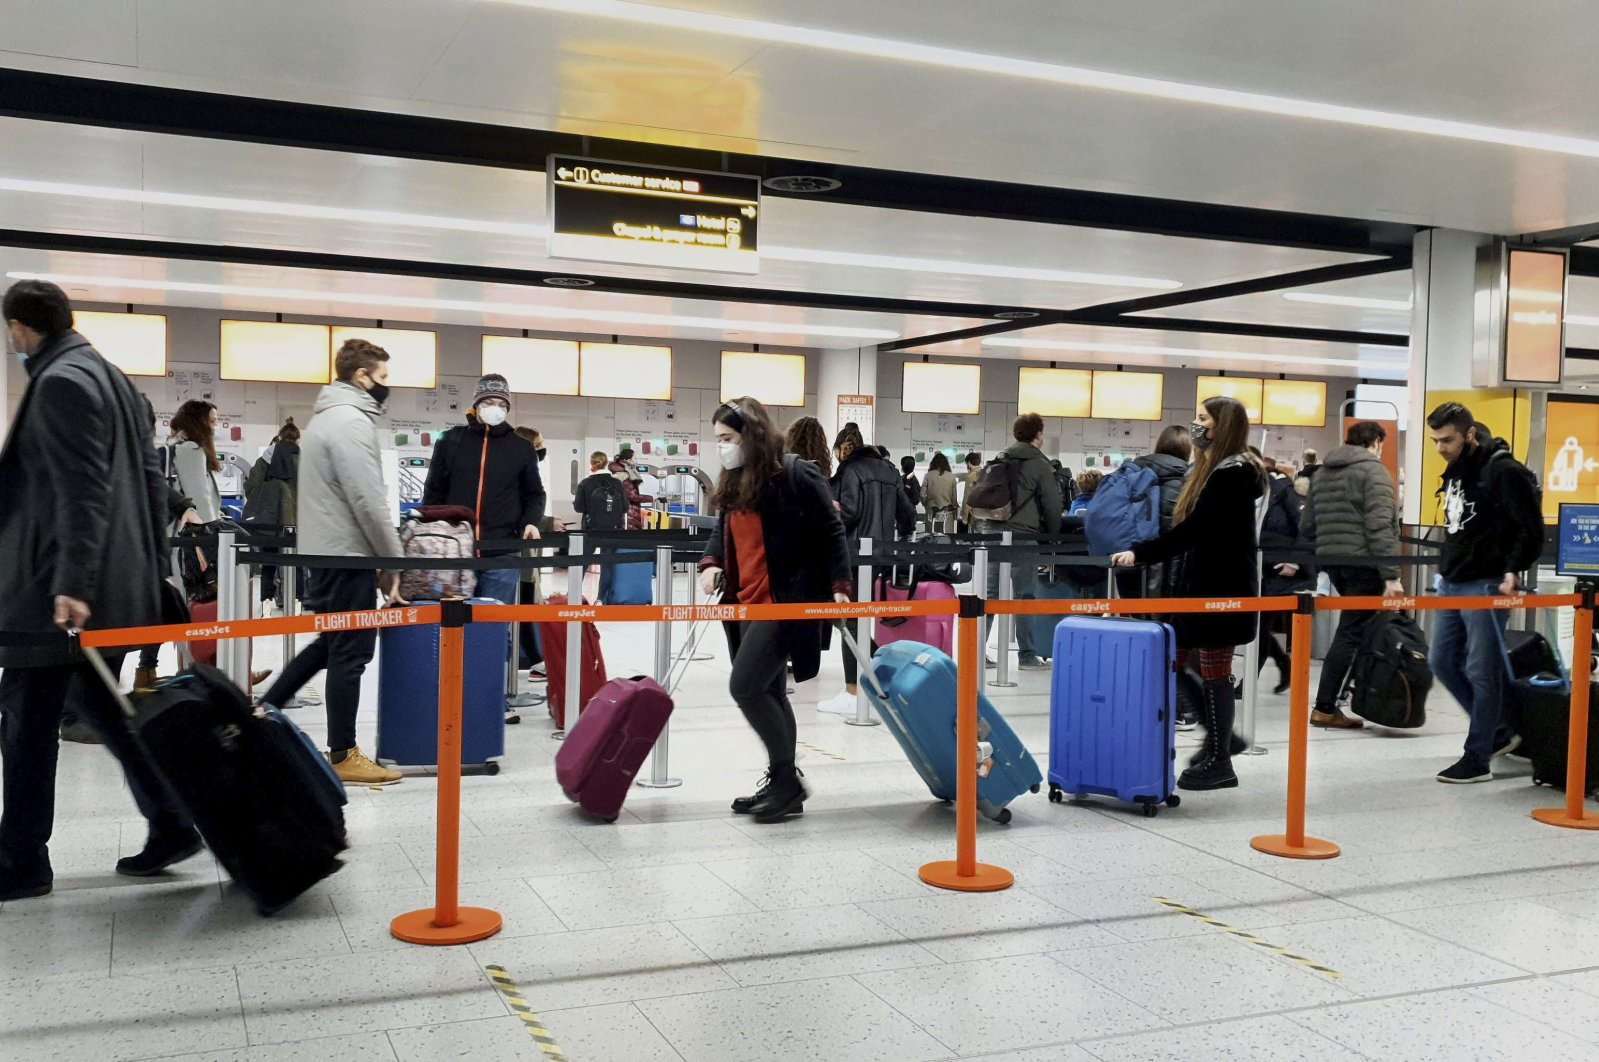 Passengers queue for check-in at Gatwick Airport in West Sussex, south of London, Britain, Dec. 20, 2020. (AP Photo)